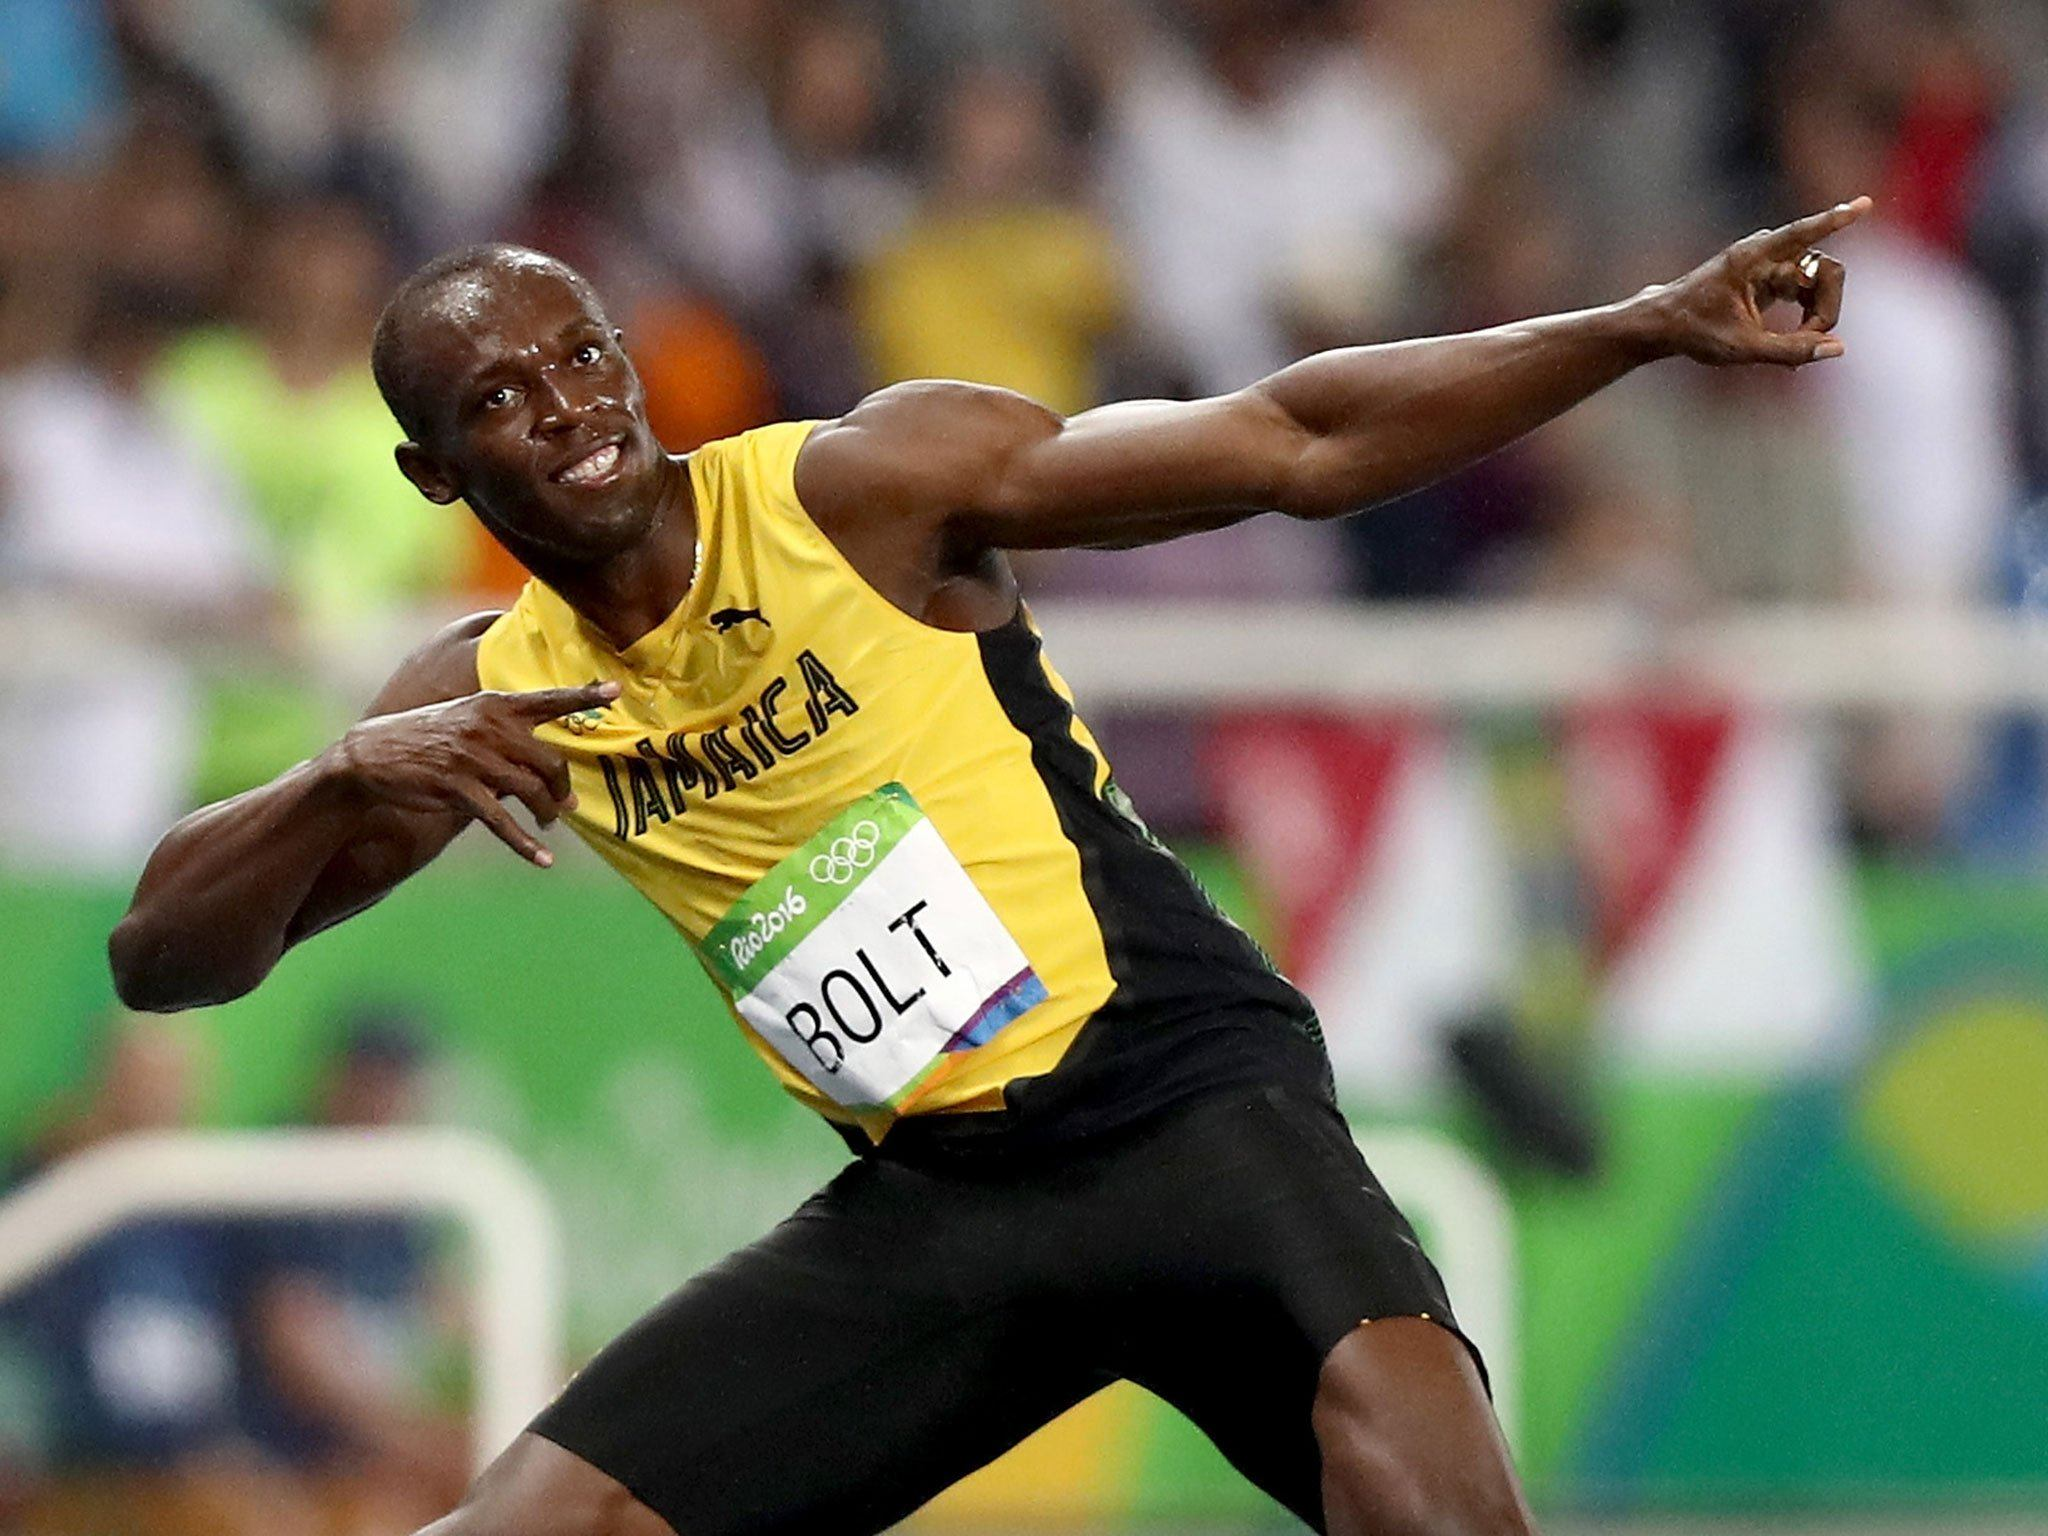 usain bolt bolt The Top 30 Most Epic Sporting Fails Of All Time